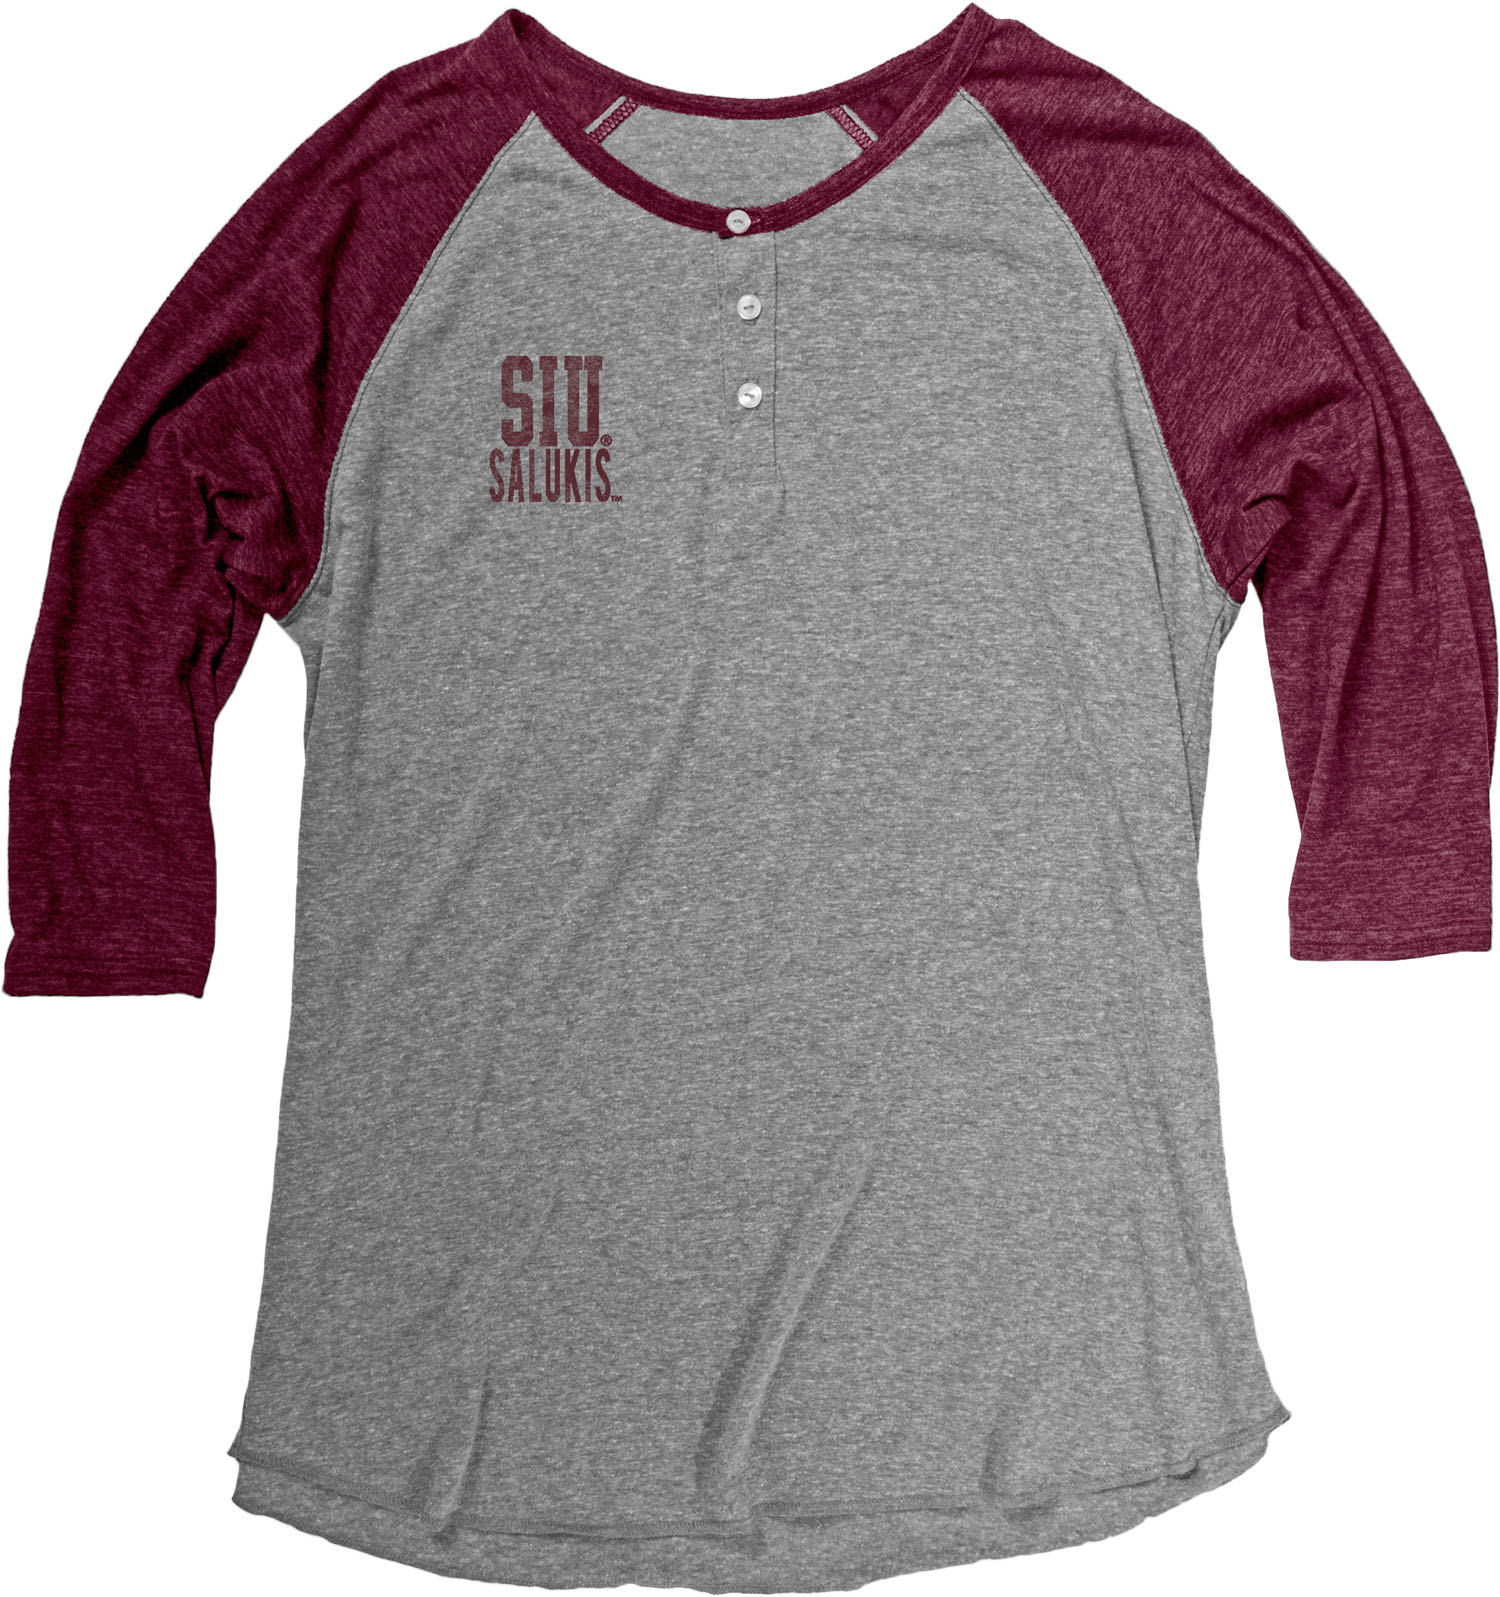 Image for the BLUE 84® SIU SALUKIS MENS TRI-BLEND HENLEY product